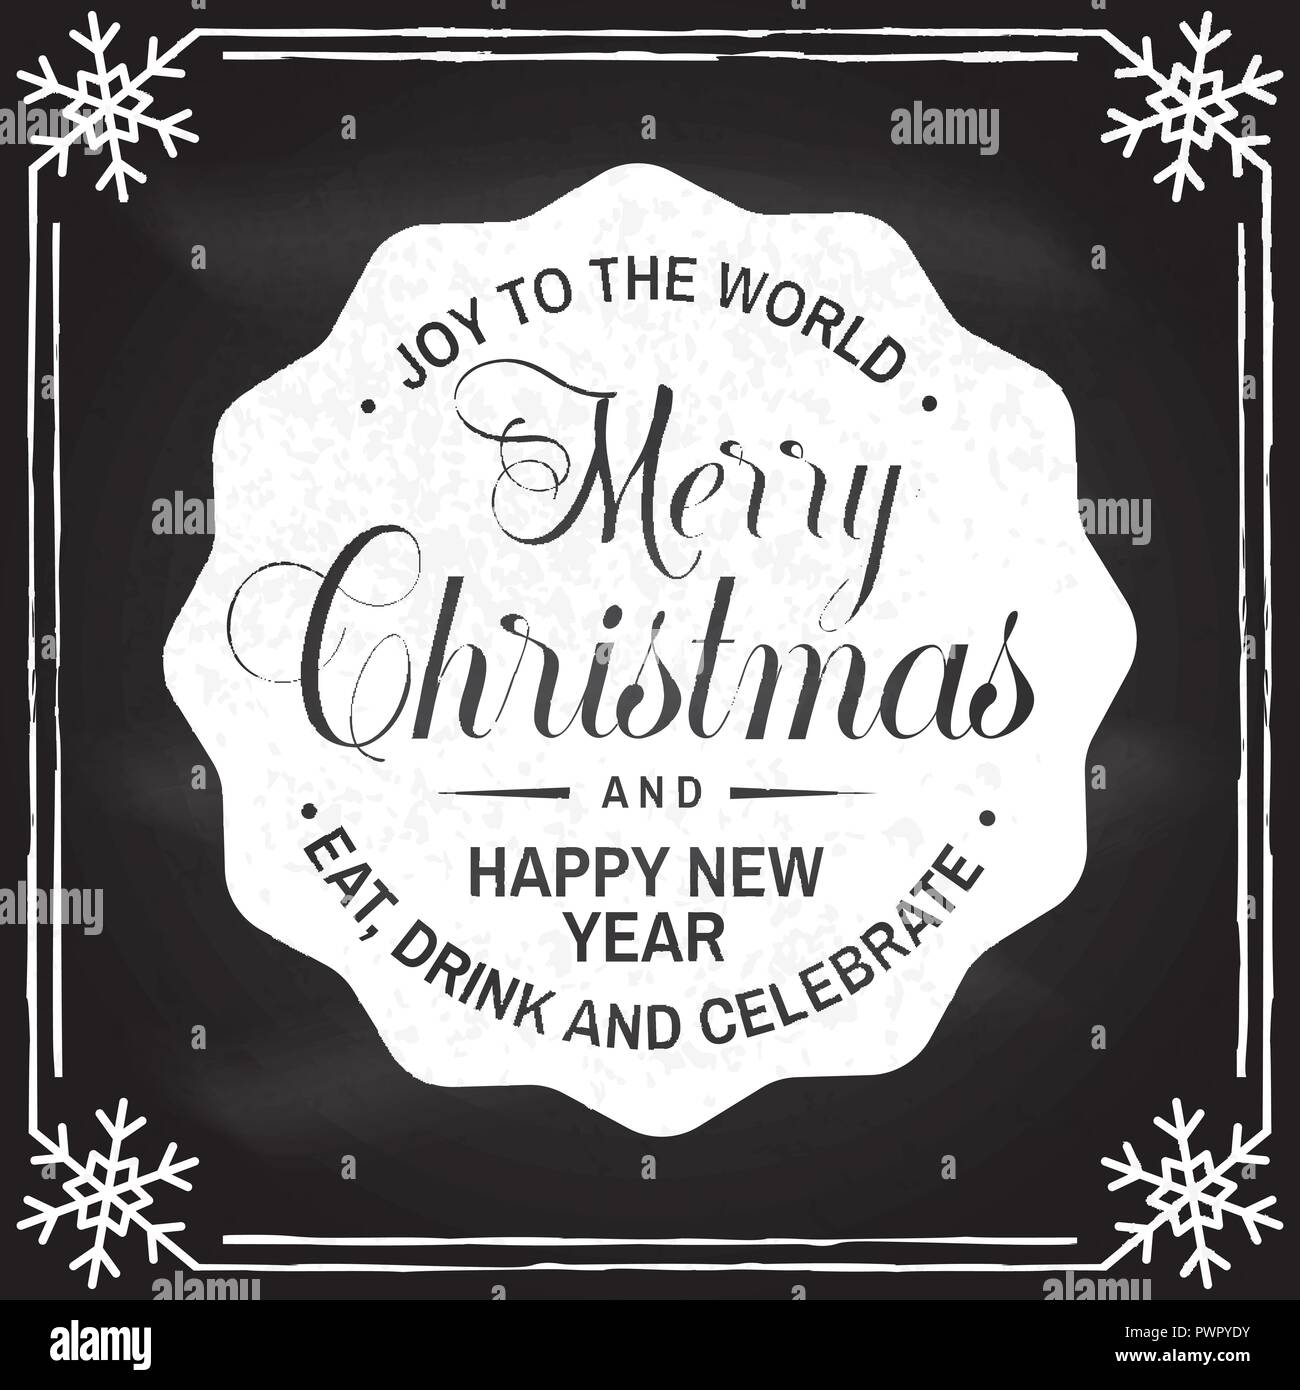 Merry Christmas And Happy New Year Stamp Sticker Vector Illustration Vintage Typography Design For Xmas New Year Emblem In Retro Style Coaster For Beer